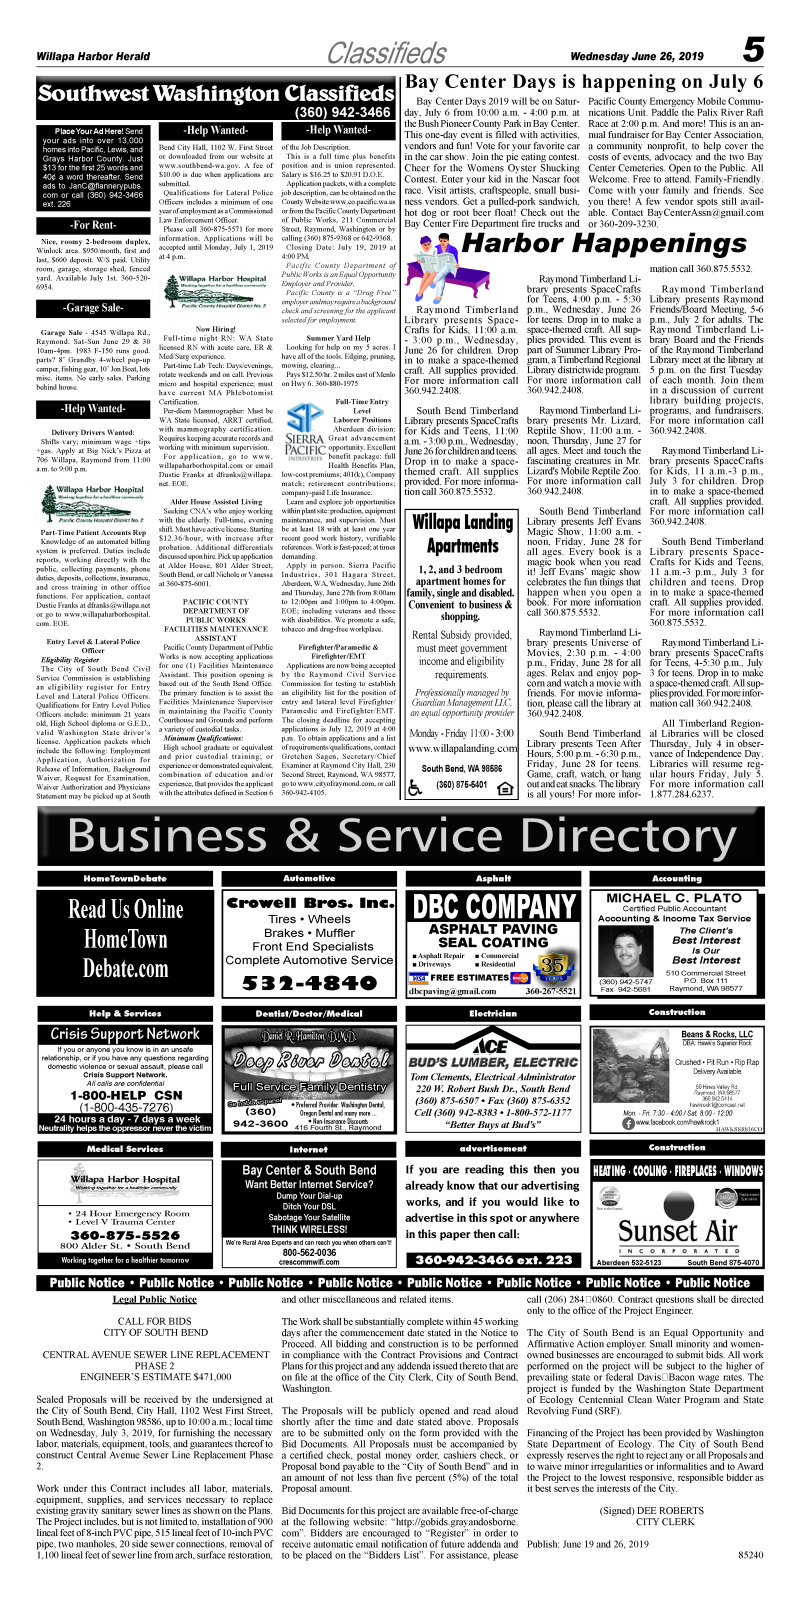 Classifieds 6.26.19